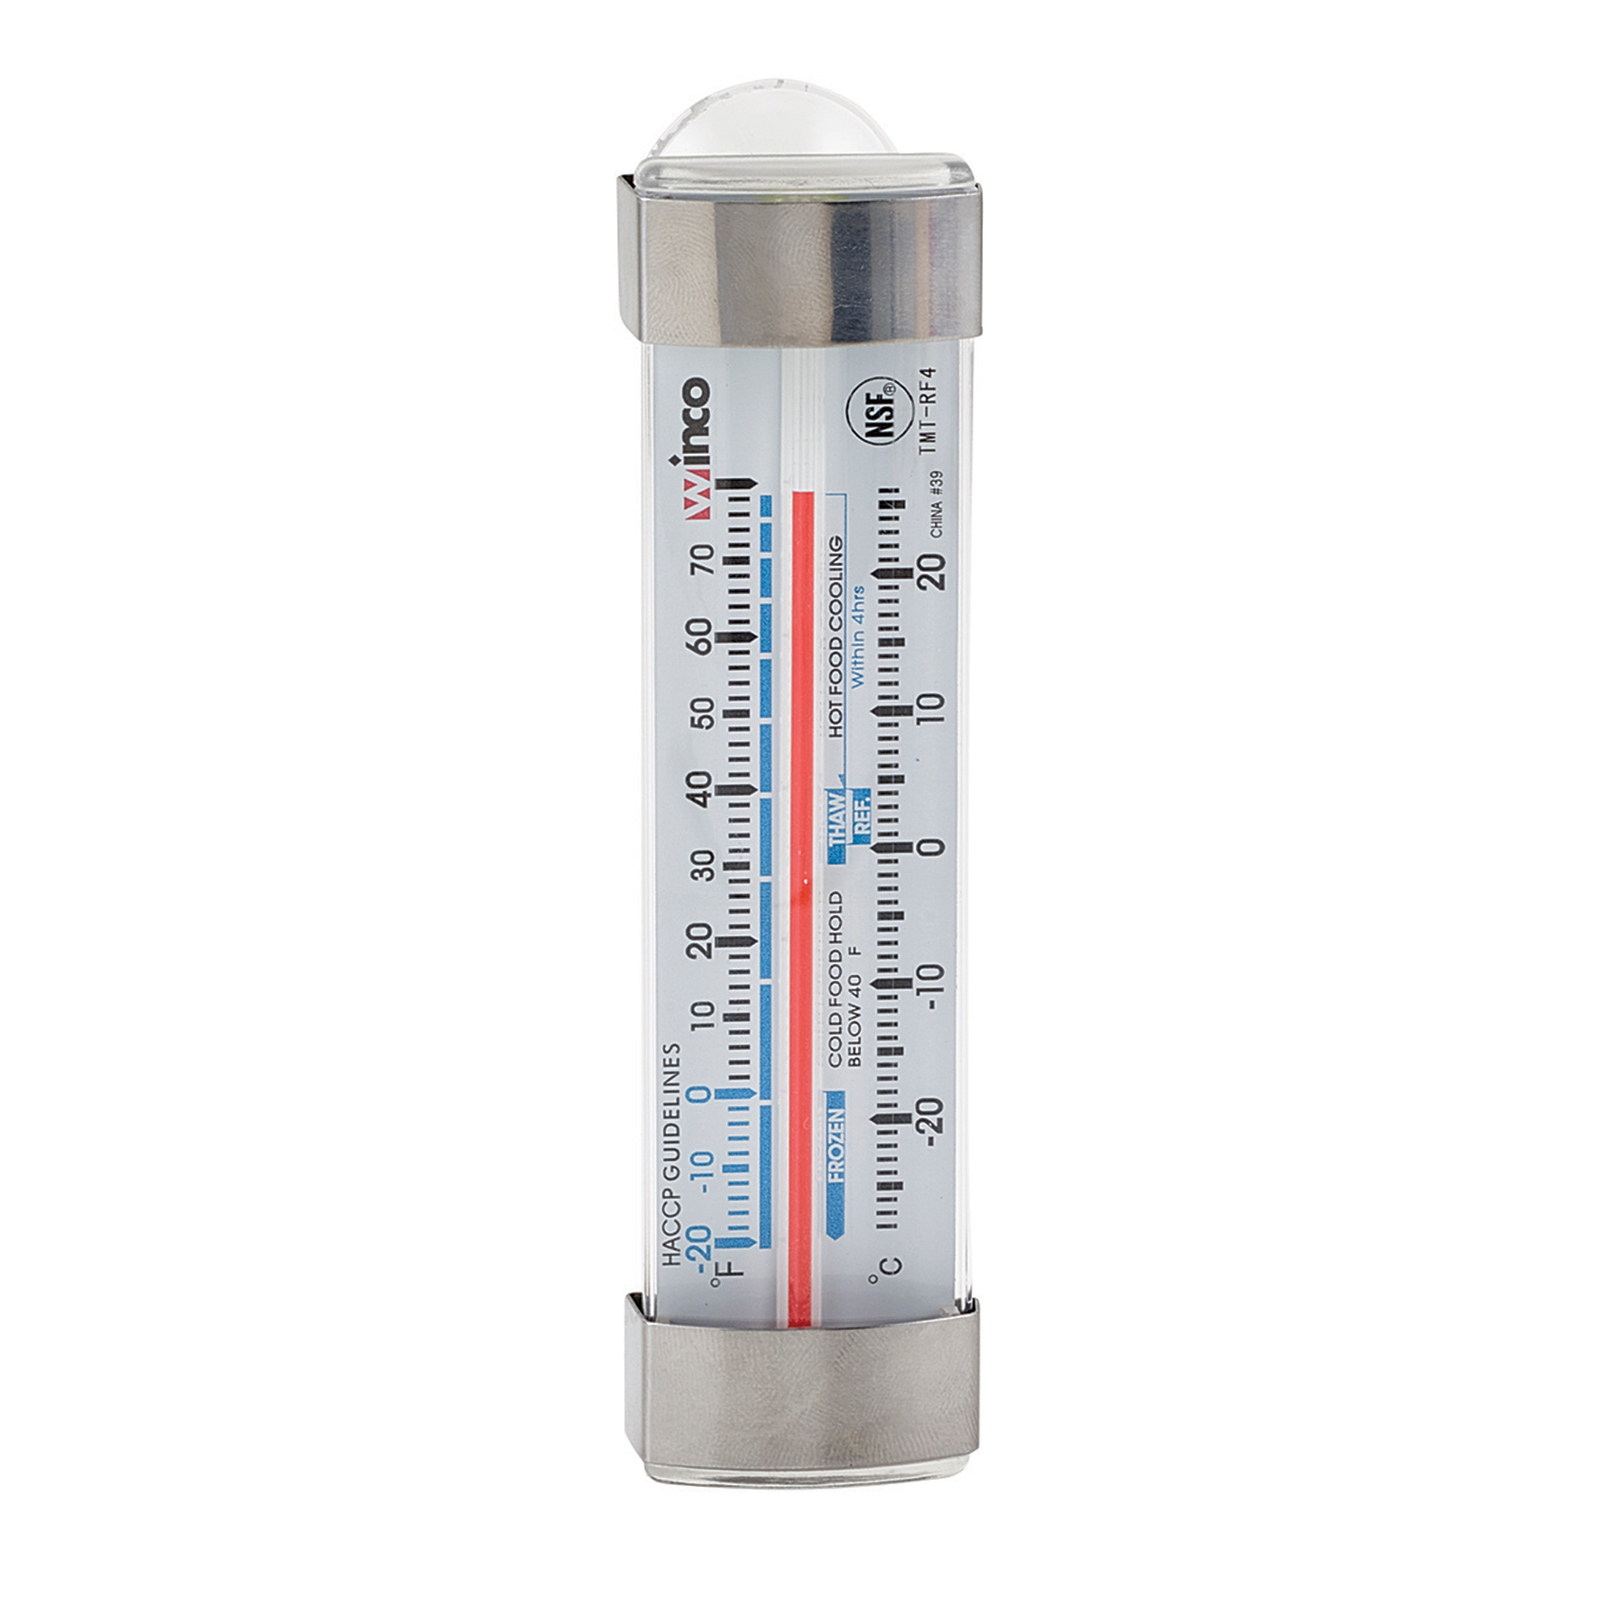 2650-11 Winco TMT-RF4 thermometer, refrig freezer